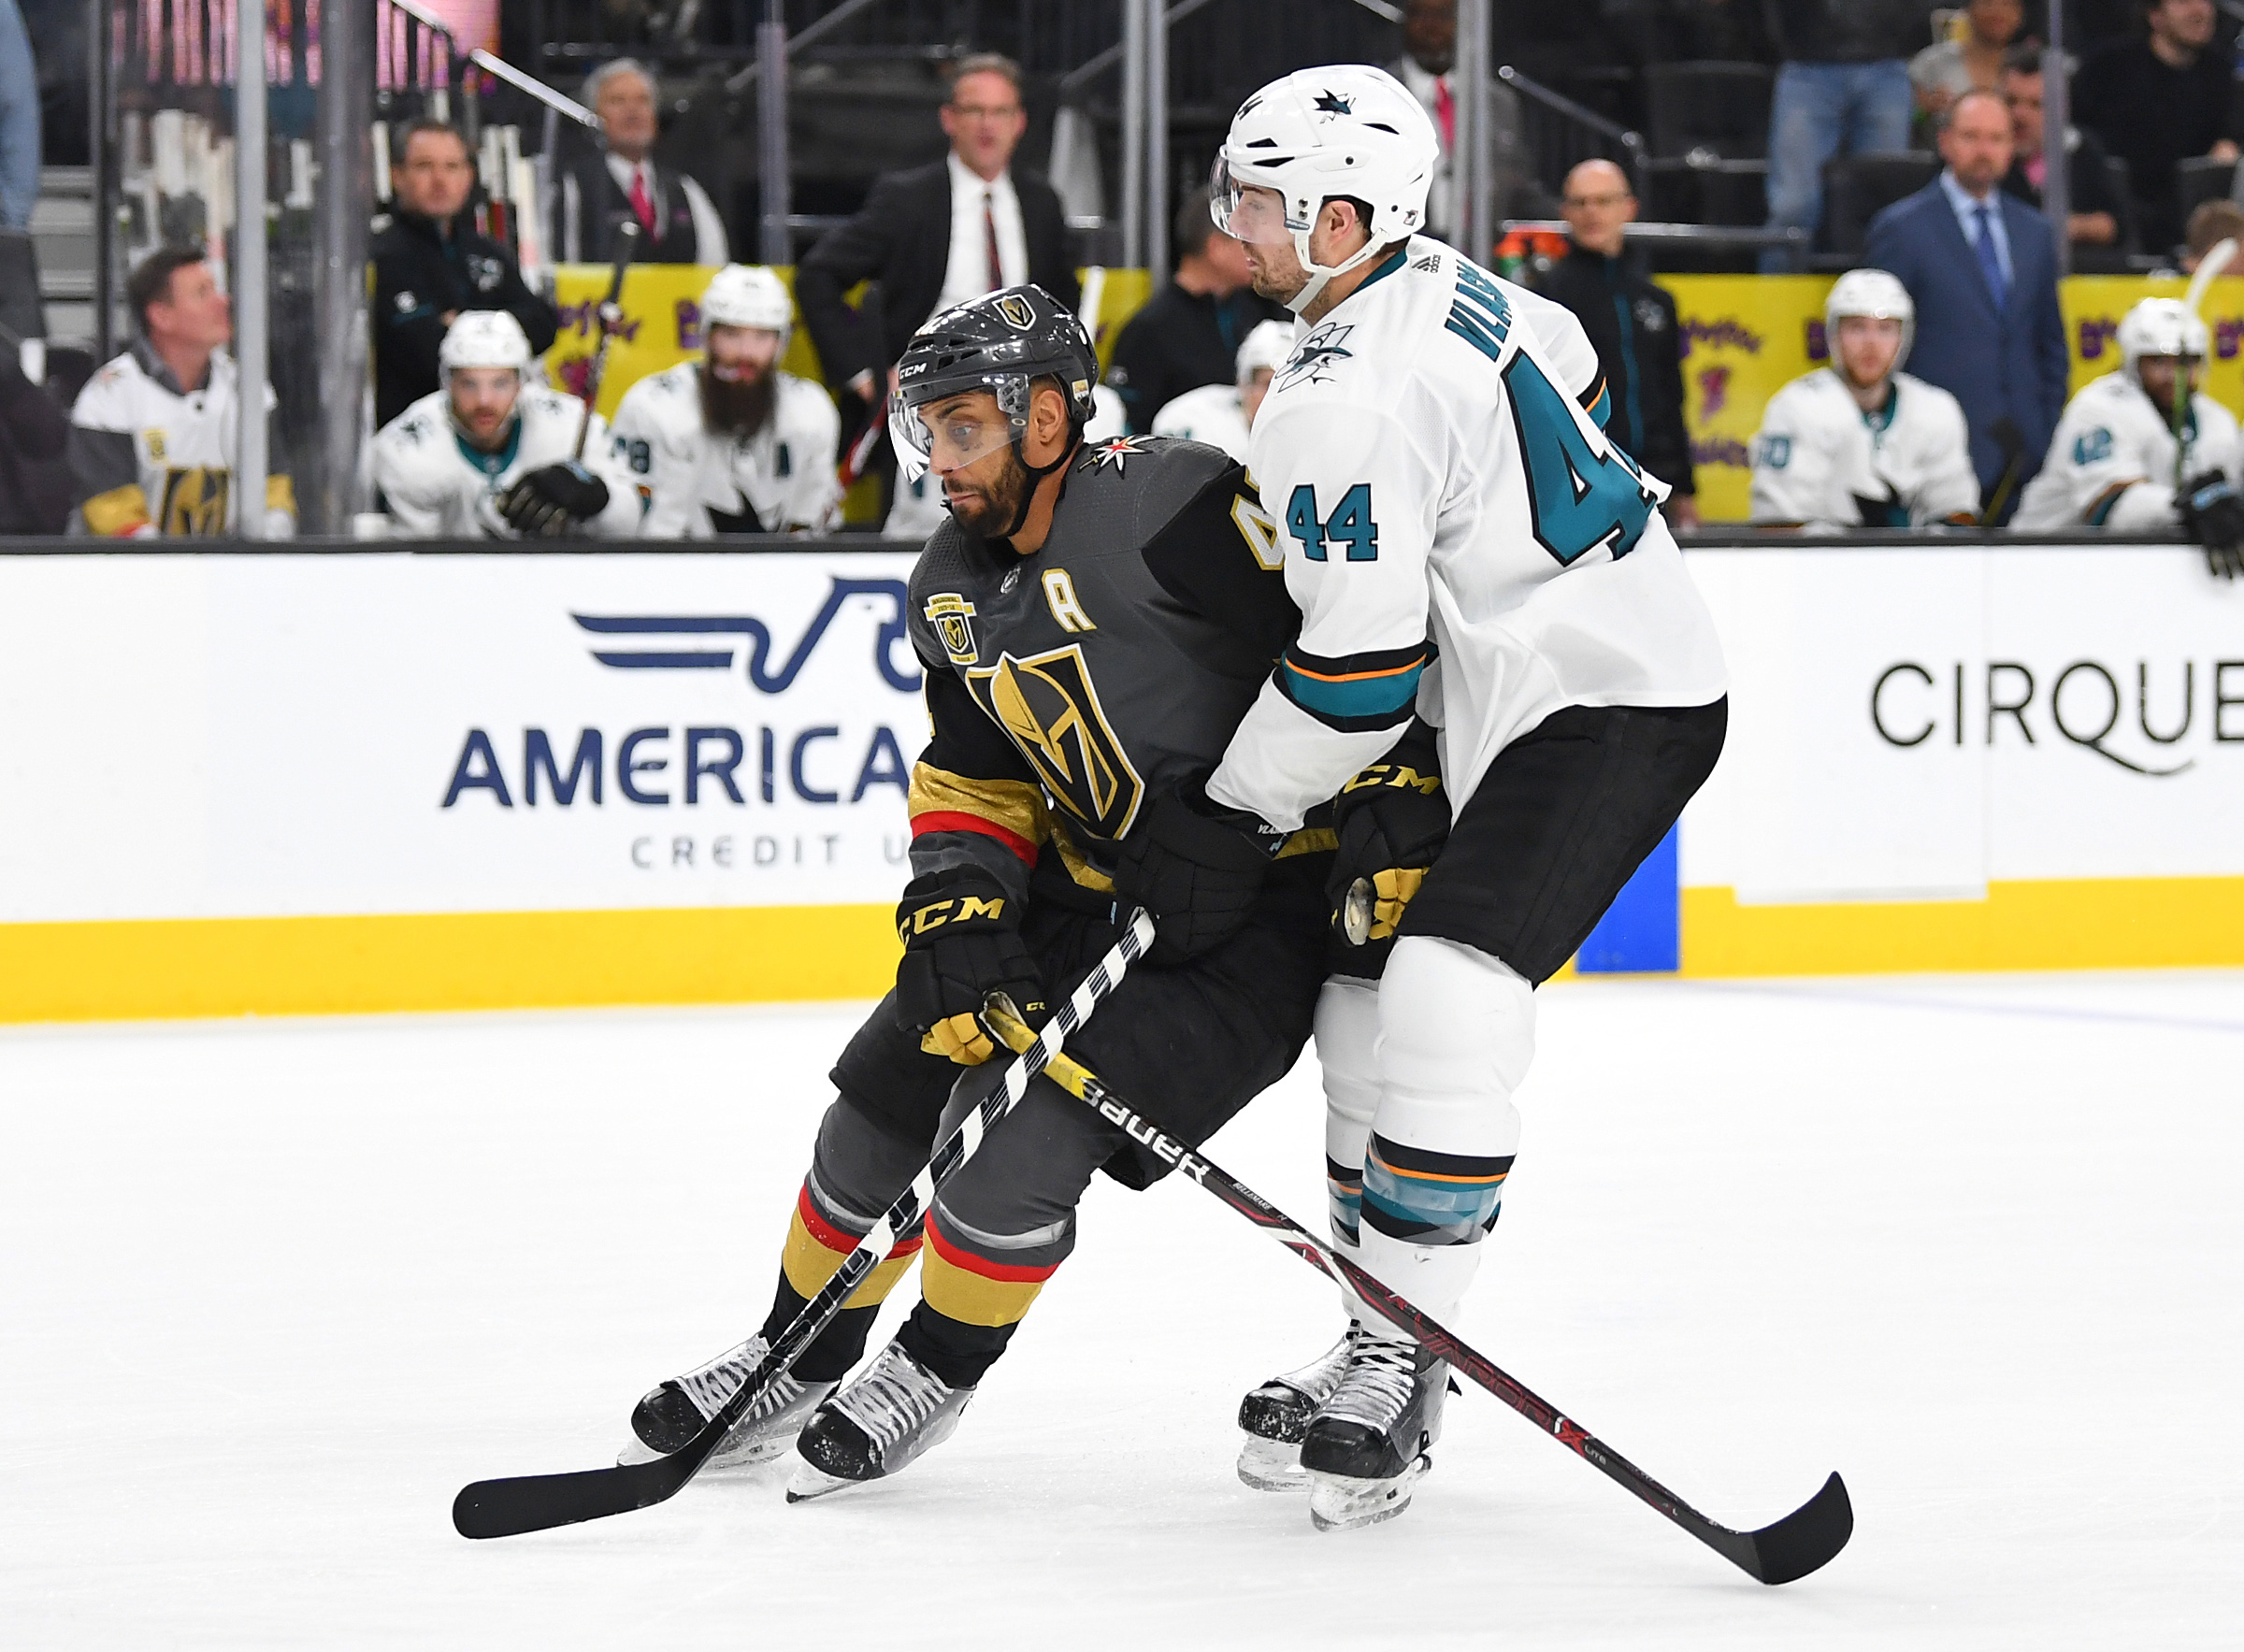 Mar 31, 2018; Las Vegas, NV, USA; San Jose Sharks defenseman Marc-Edouard Vlasic (44) ties up the stick of Vegas Golden Knights left wing Pierre-Edouard Bellemare (41) during the third period at T-Mobile Arena.